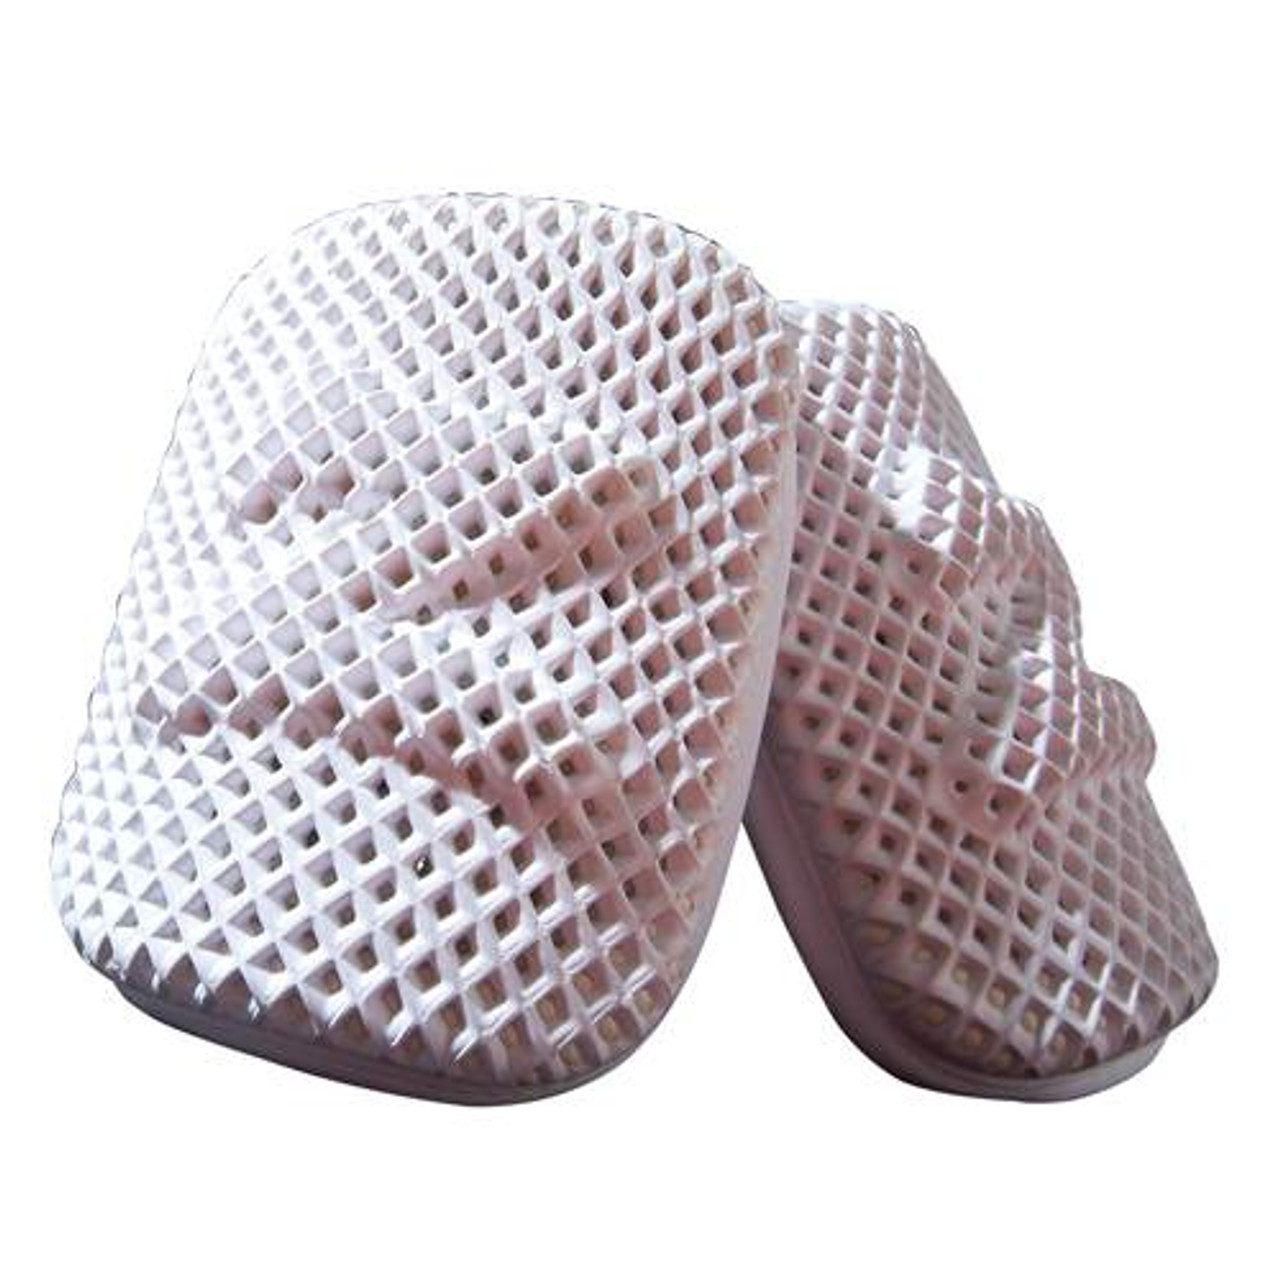 Z-Cool Thigh Guards for Football - Small